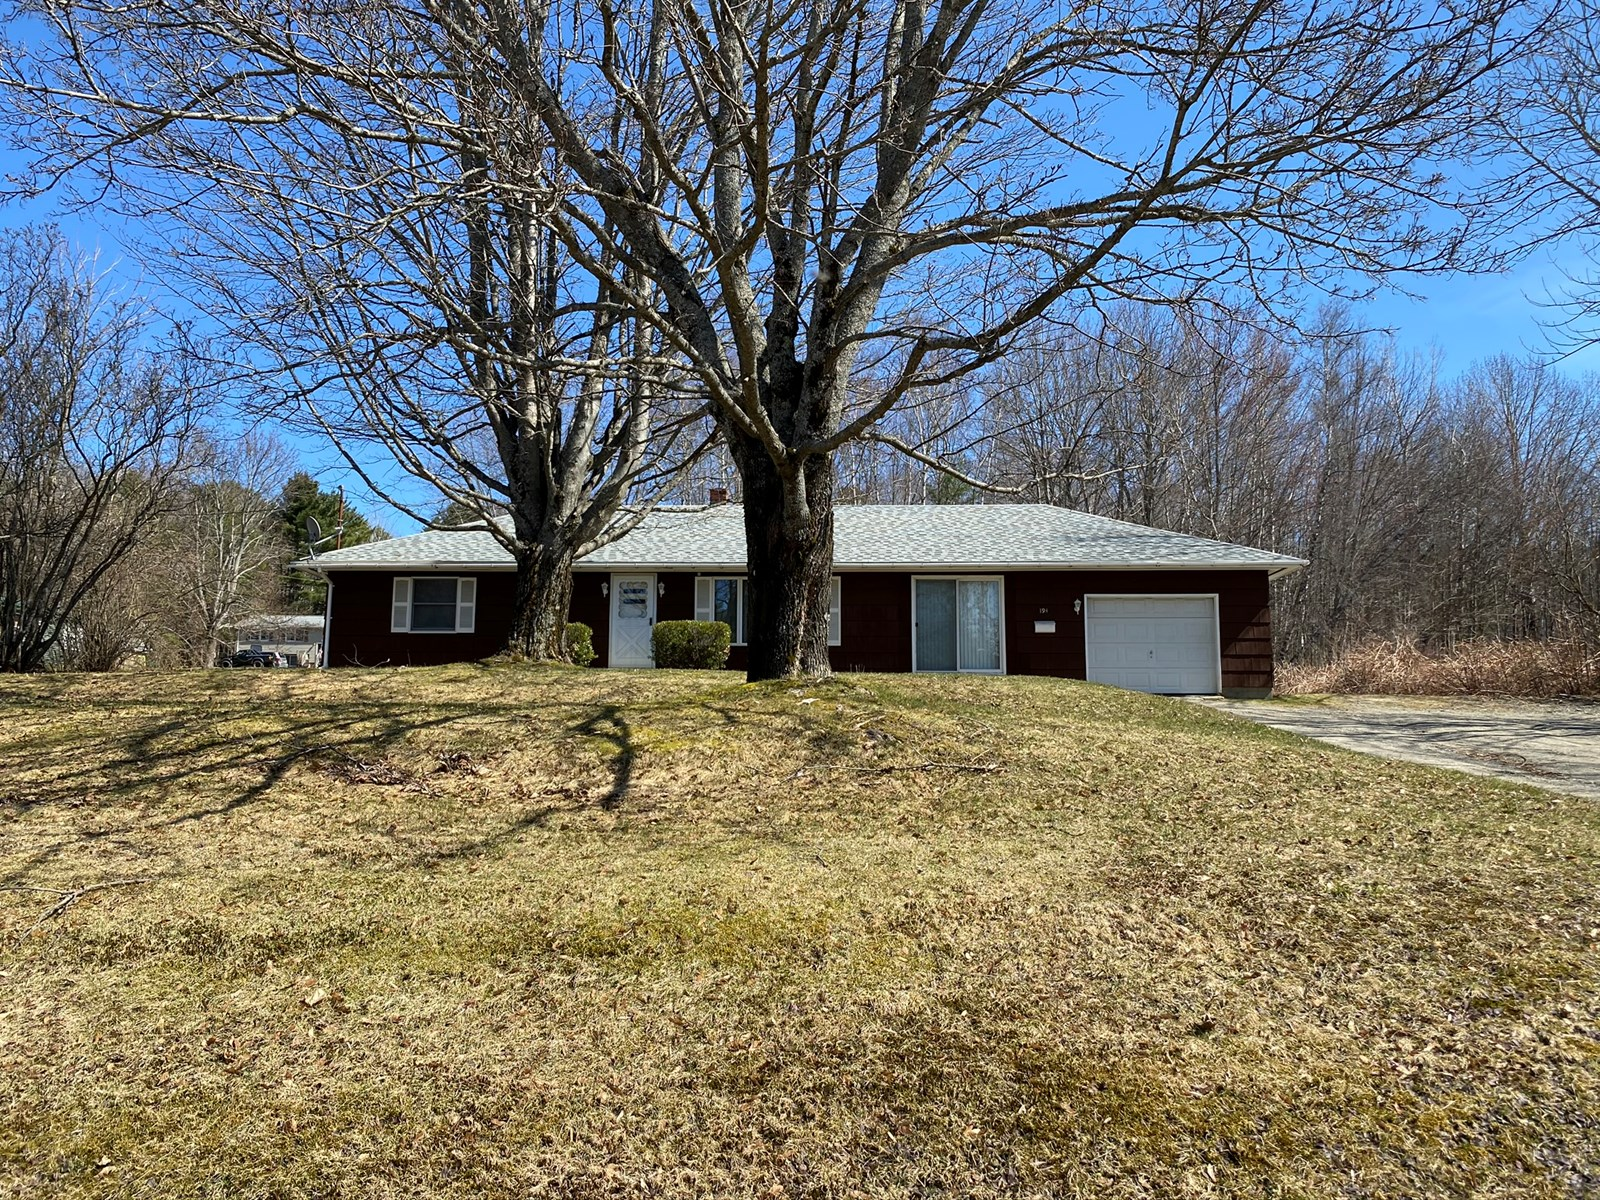 Home For Sale on Double Lot in Lincoln, Maine